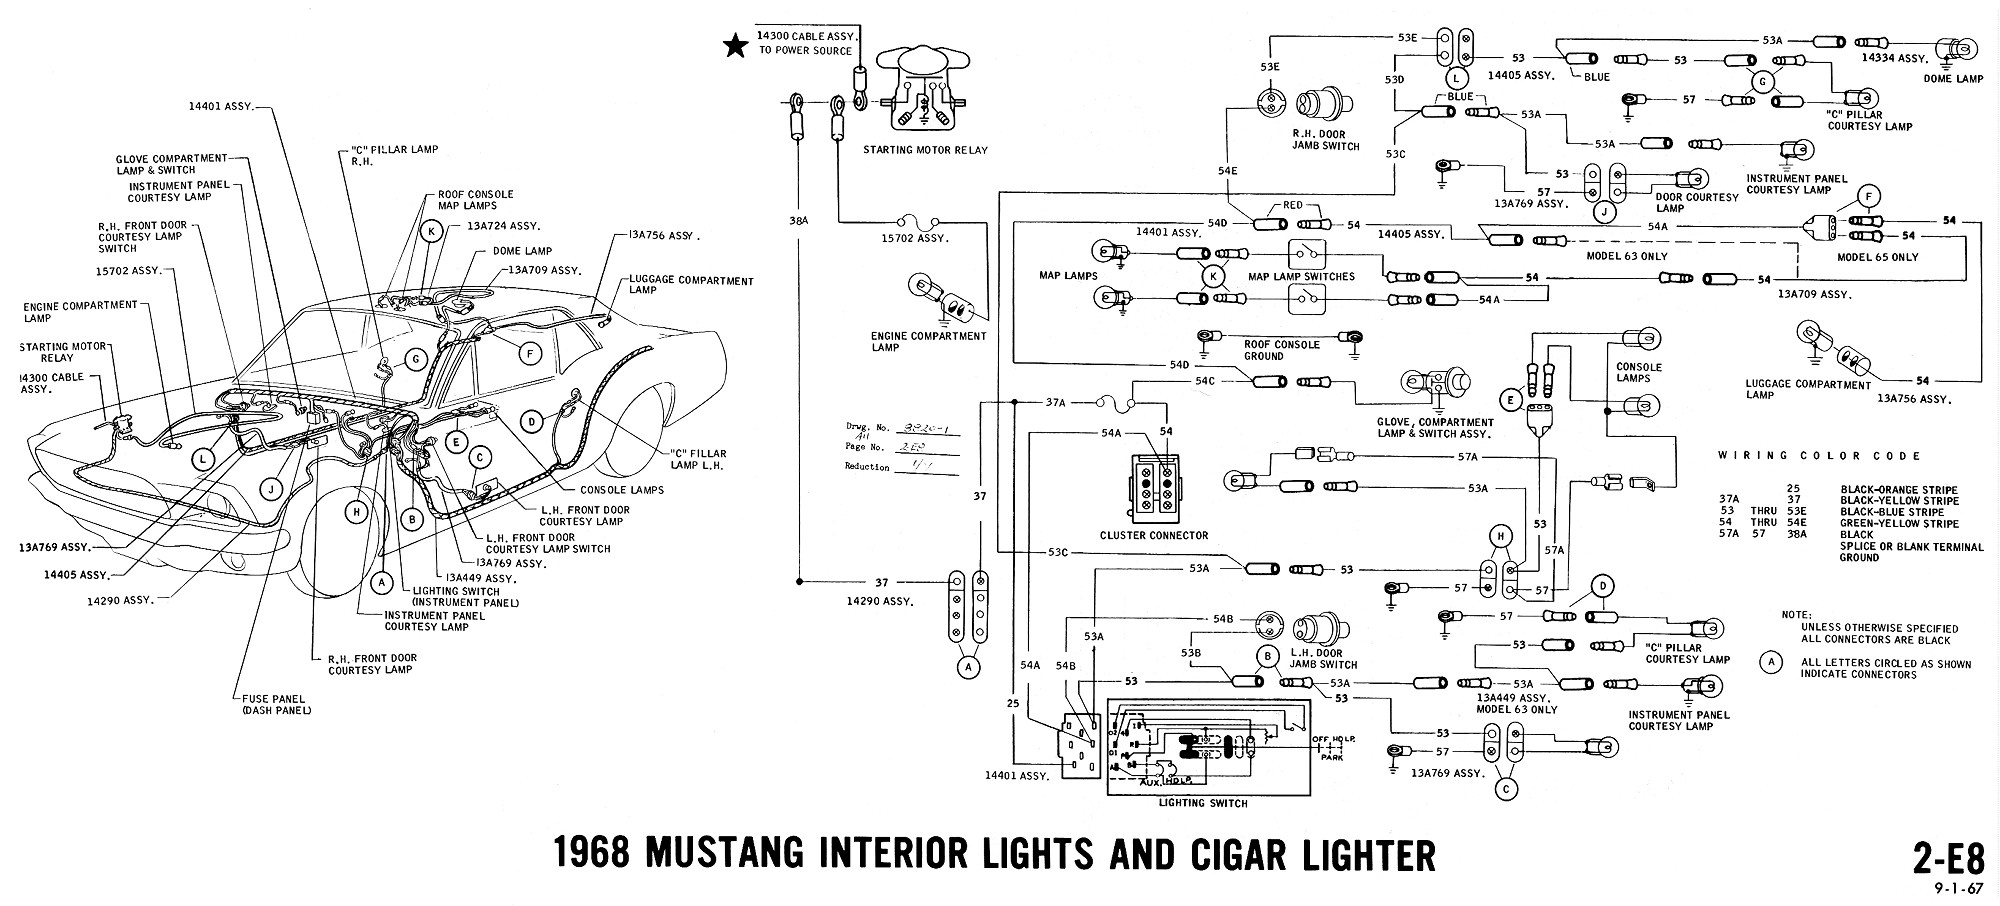 1968 Mustang Wiring Diagram Vacuum Schematics in addition KQ8t 374 moreover Electrical Engineering Symbols For Drawings likewise S le Genogram Diagram together with Iec 2p breakers. on wiring diagram symbols chart